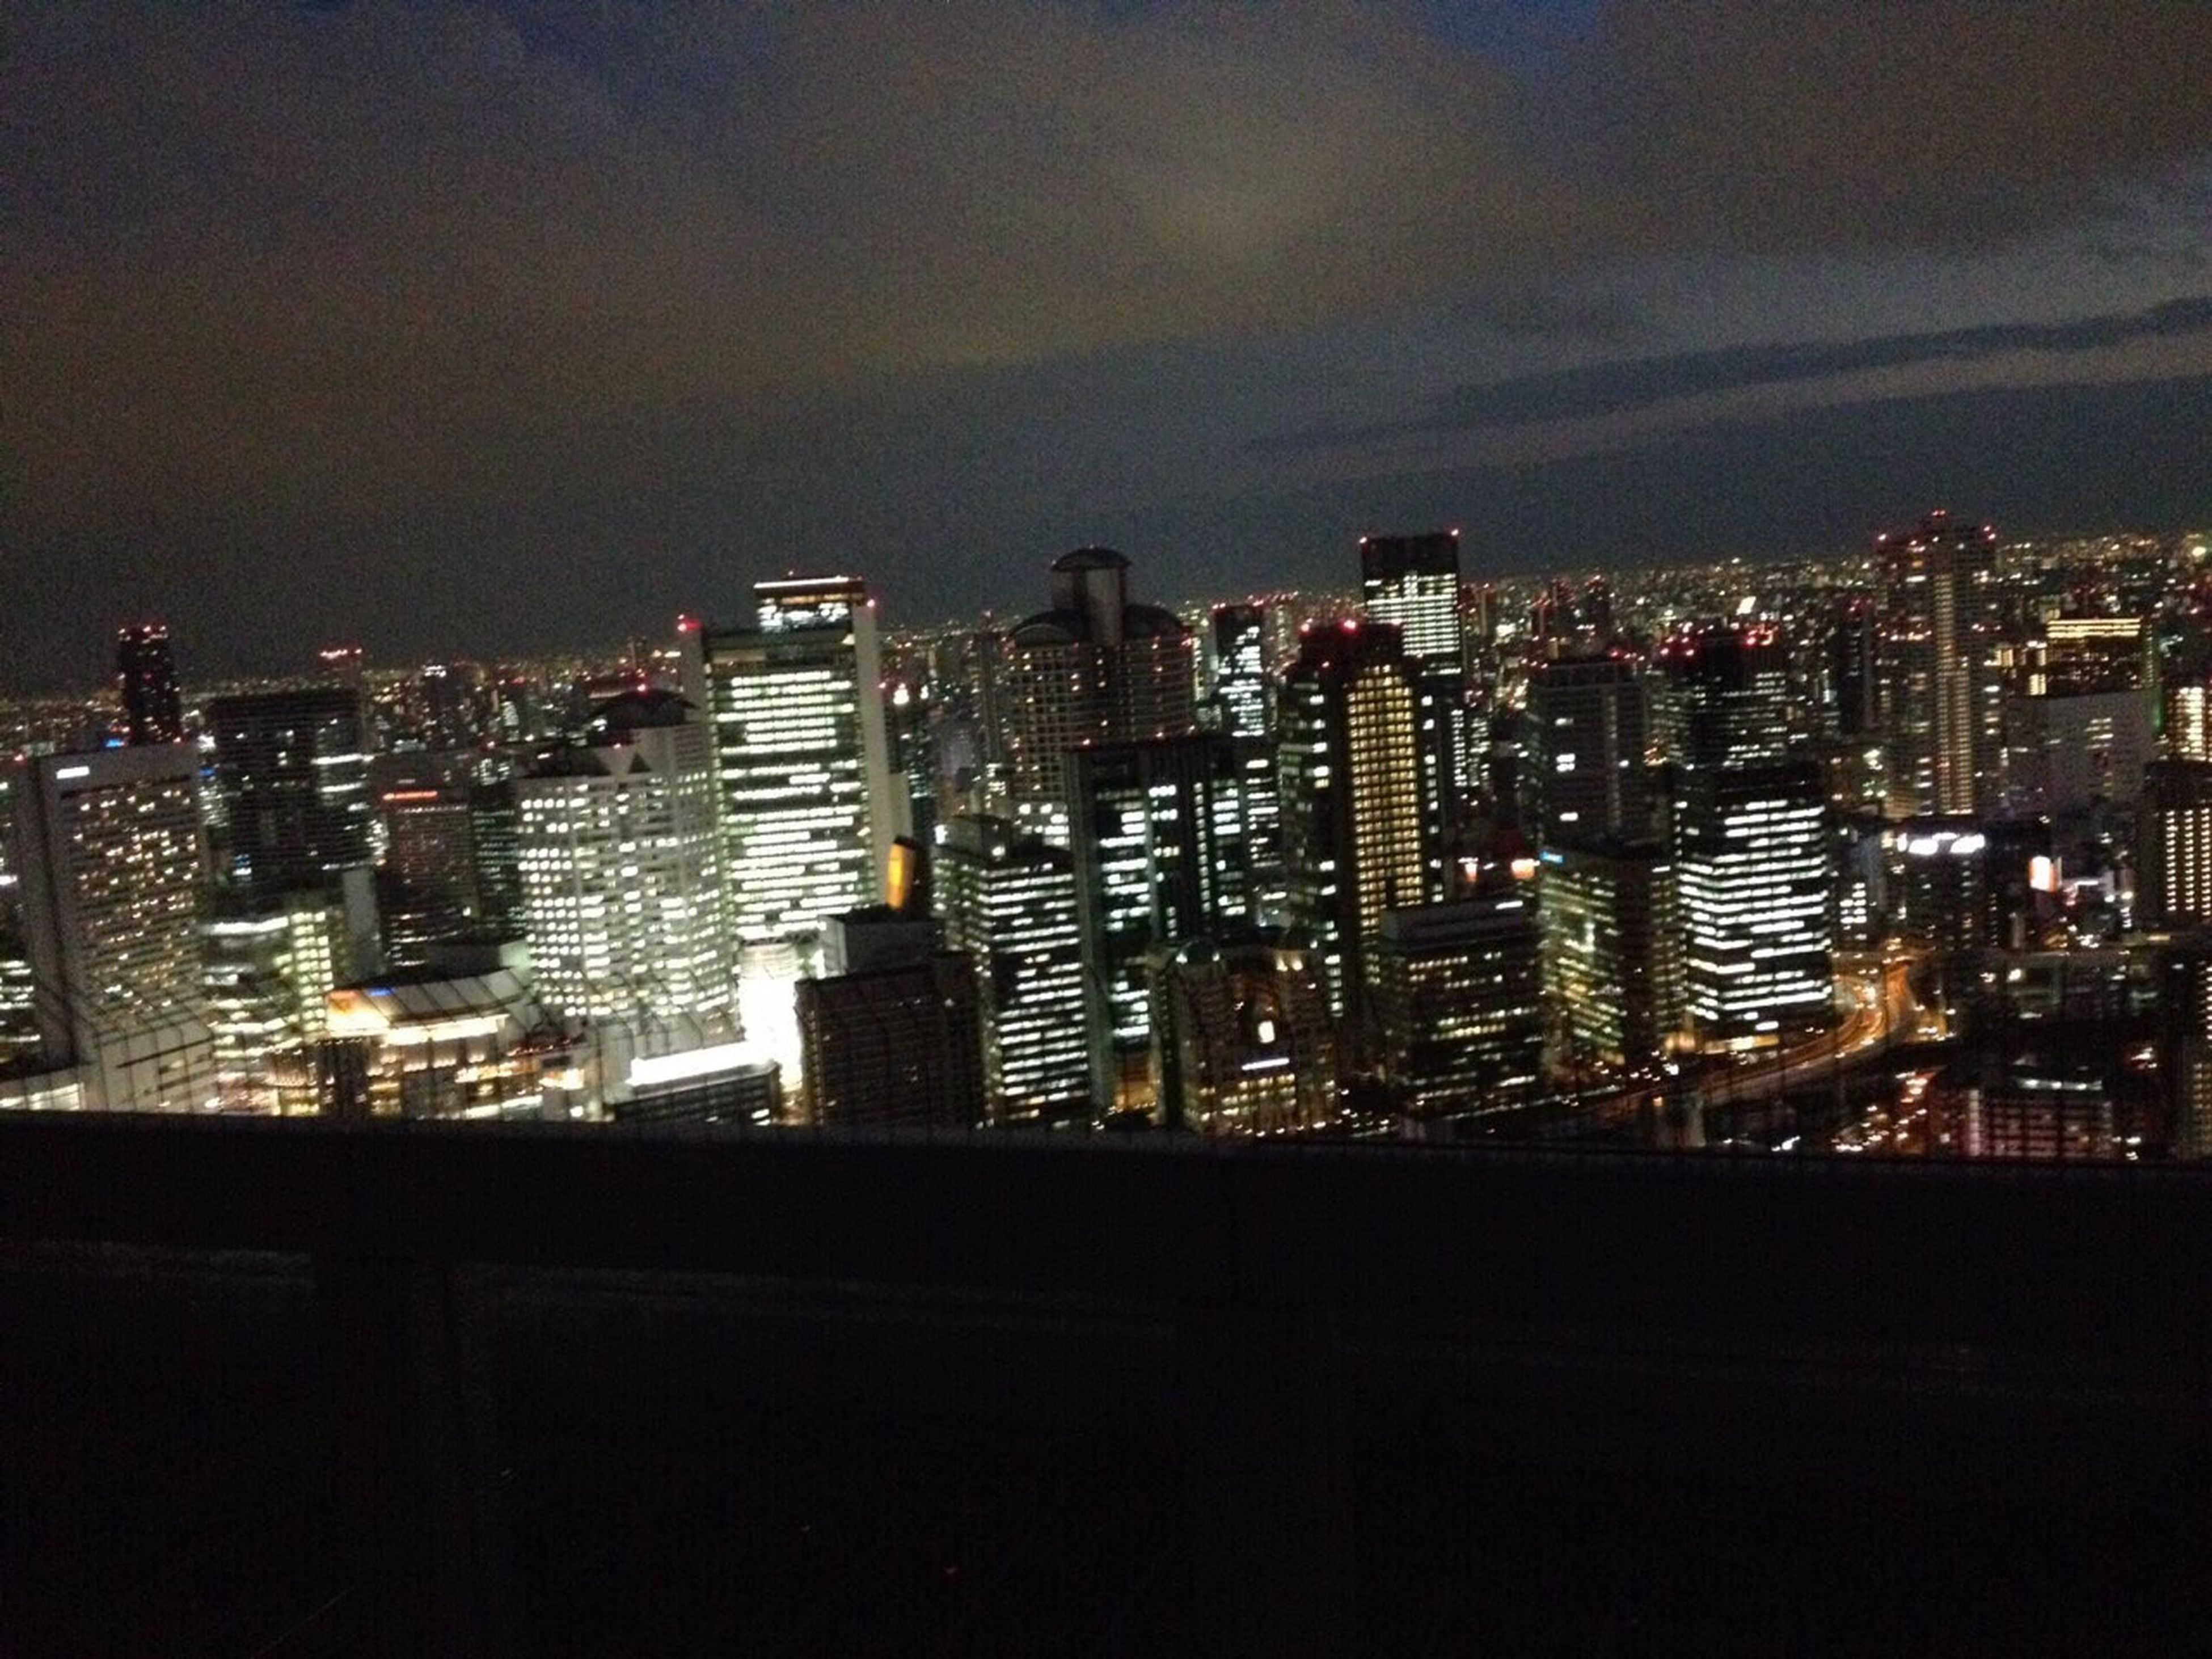 illuminated, building exterior, cityscape, city, night, architecture, built structure, skyscraper, modern, crowded, residential building, sky, high angle view, office building, dark, tower, residential district, city life, residential structure, urban skyline